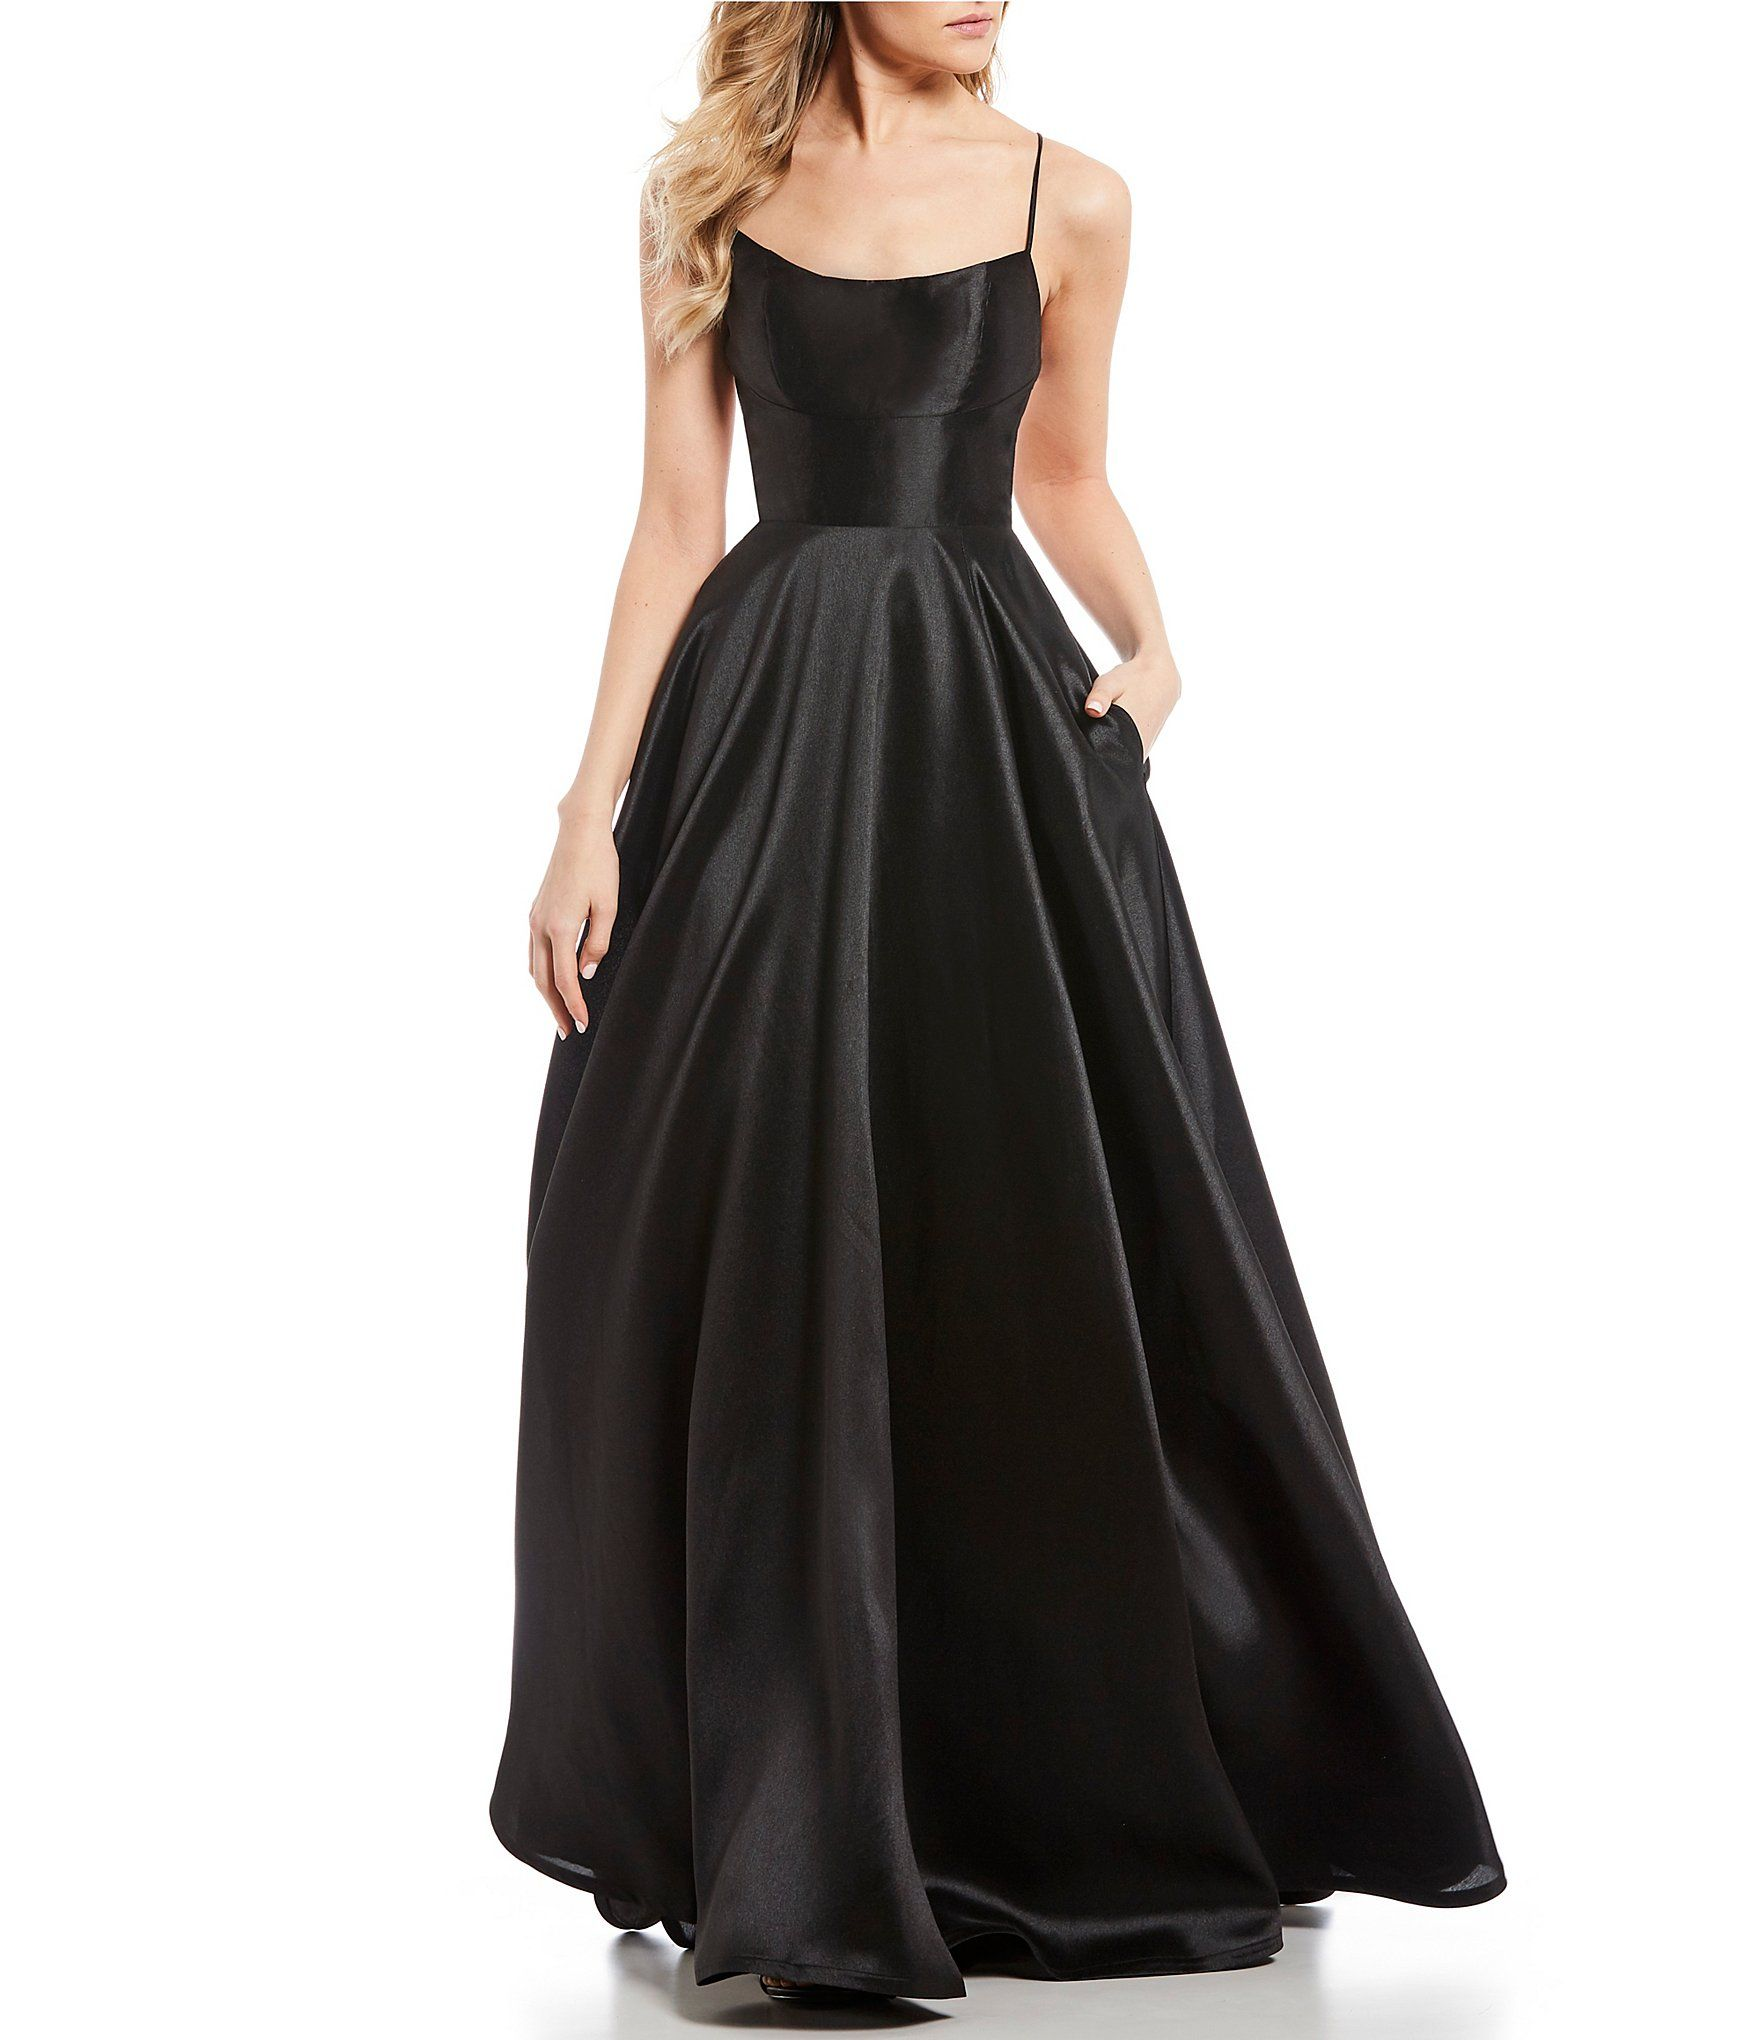 f784c98d39 Shop for B. Darlin Lace Up Back Satin Long Dress at Dillards.com. Visit  Dillards.com to find clothing